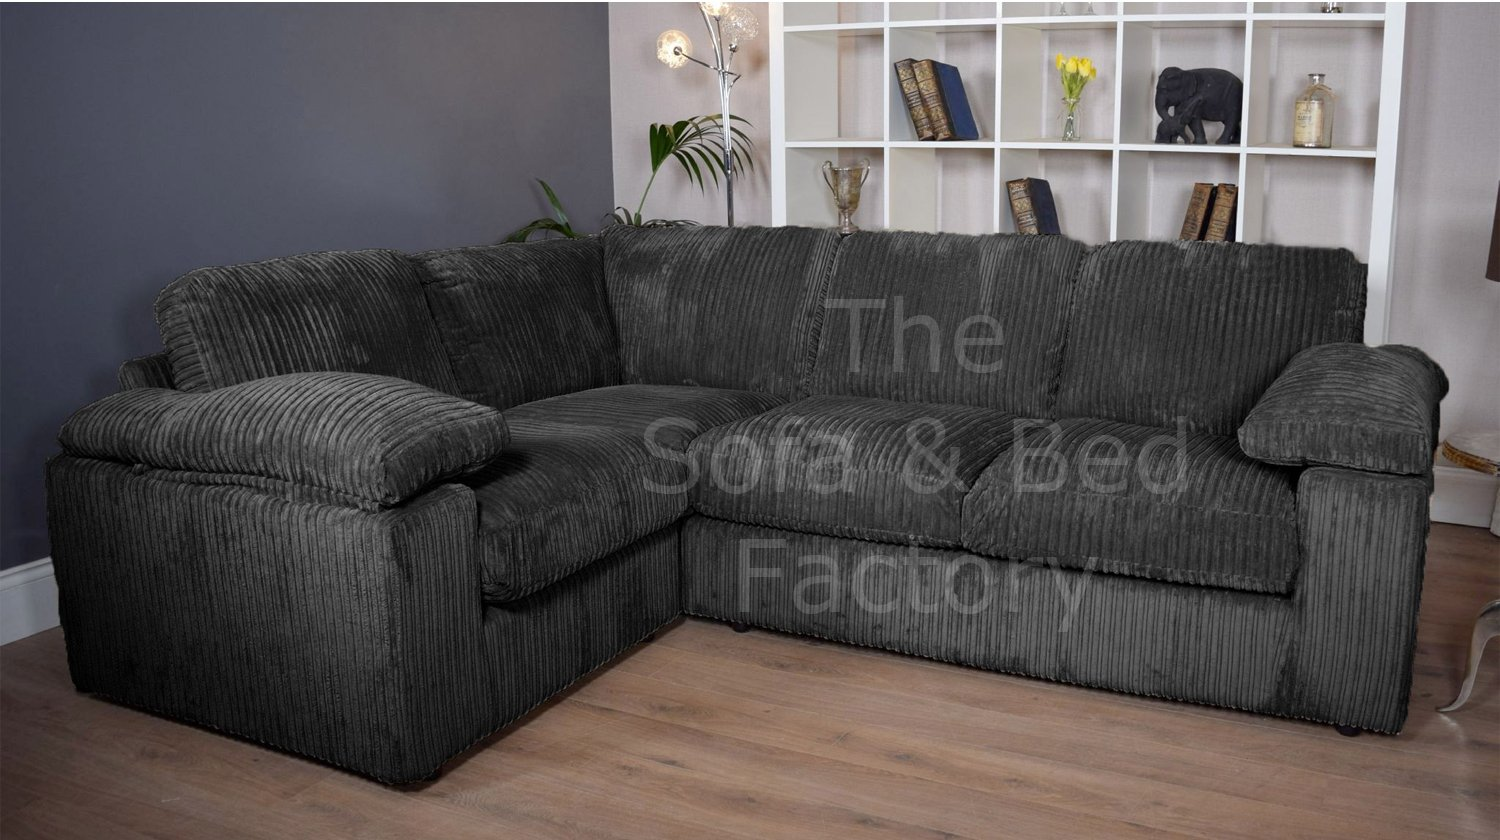 new style dcb2f b4920 Details about New Ruxley Large Fabric 4 Seater Corner Sofa - 1 Corner 2 -  Black Cord Cheap